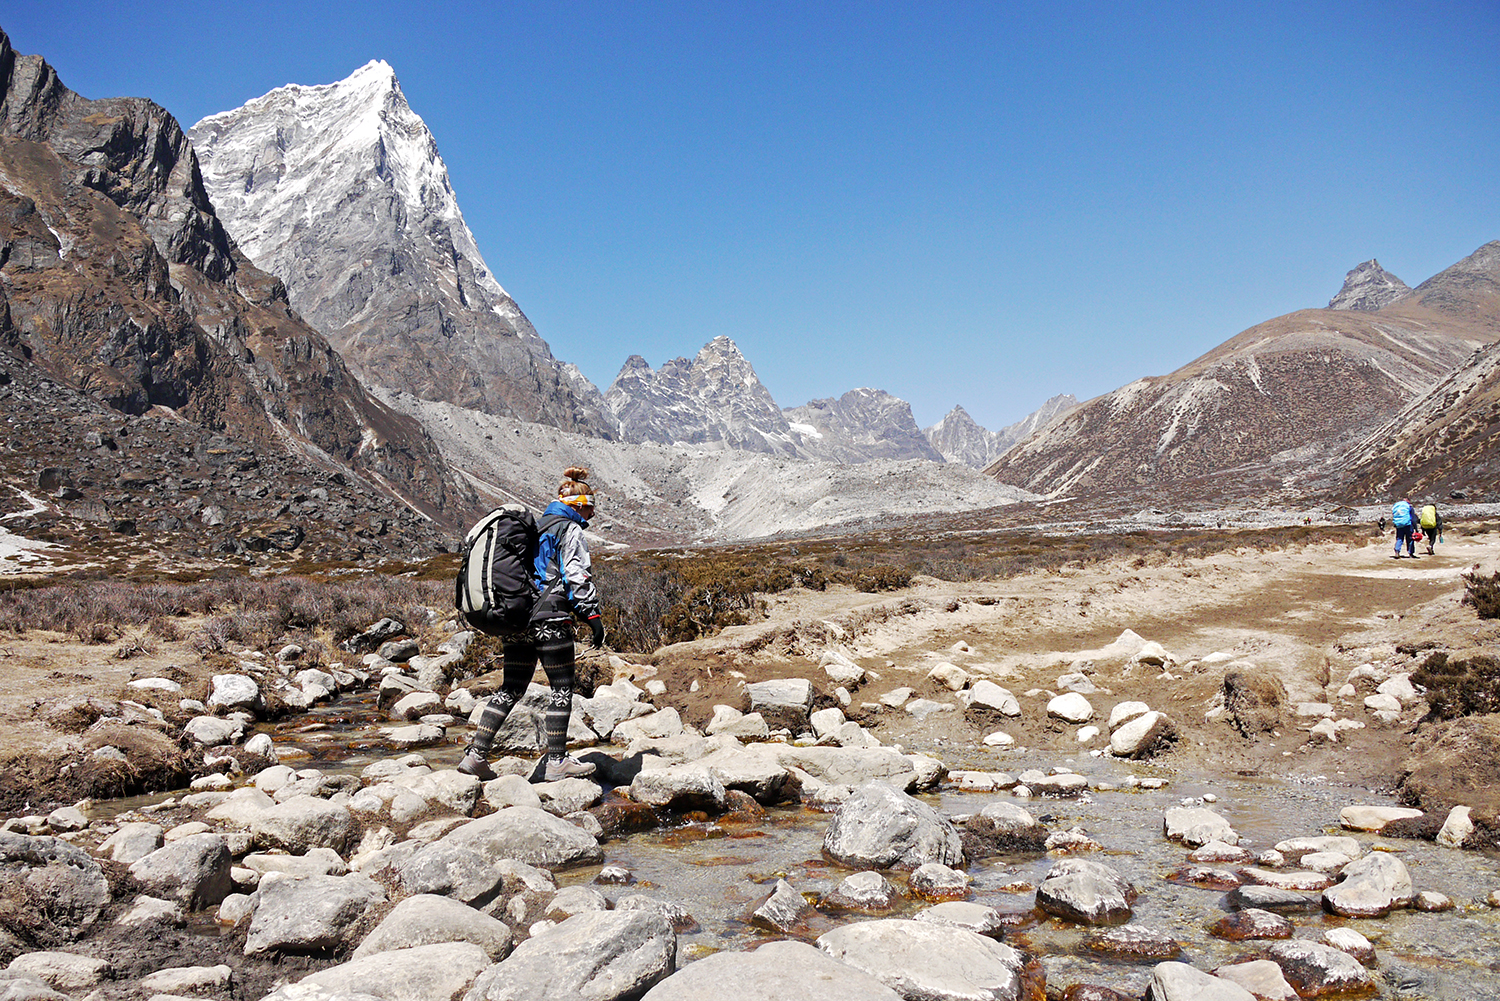 Noelle walking the Everest Base Camp trek without a guide